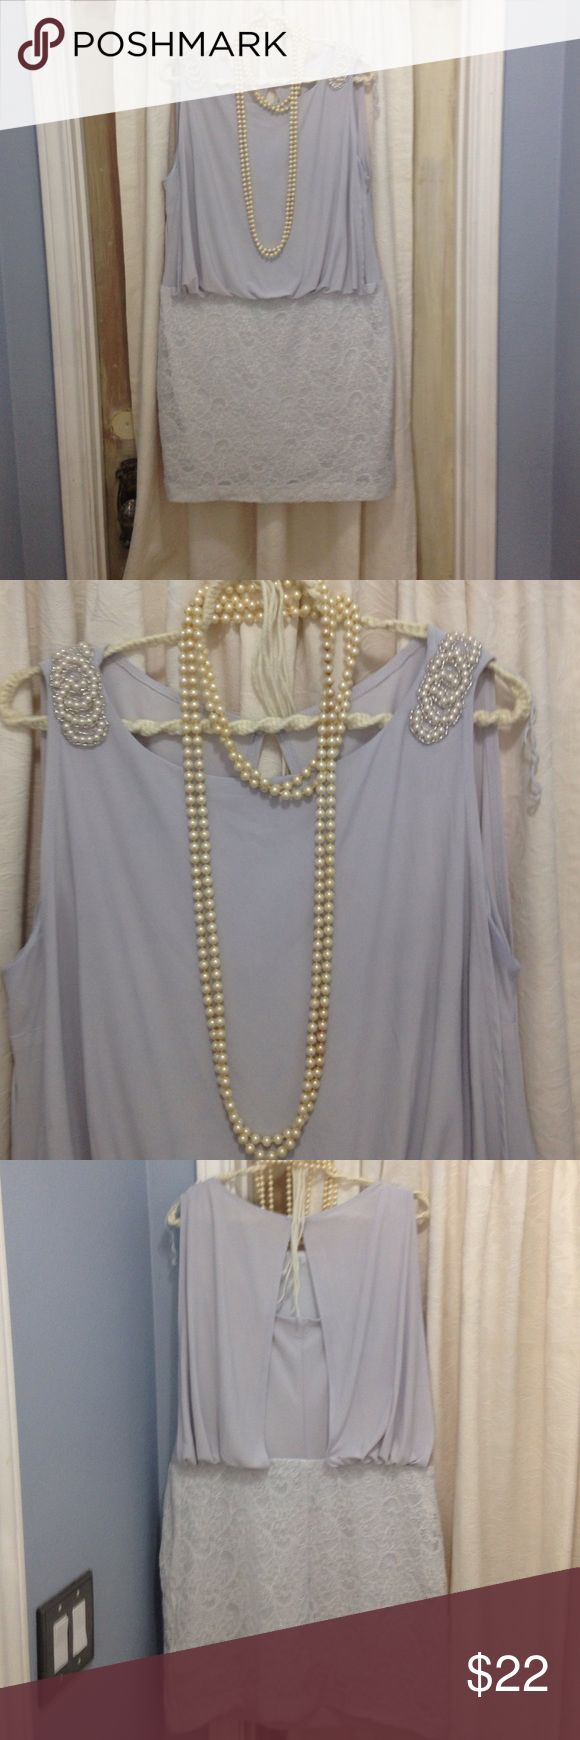 Lacey Scarlett Dress Size 16 Soft light gray dress lace design over polyester. Pearl stitching with silver beading design on each shoulder. Side zipper, one button closure on the collar in back with draping. Great for the holiday parties! Scarlett Dresses Midi